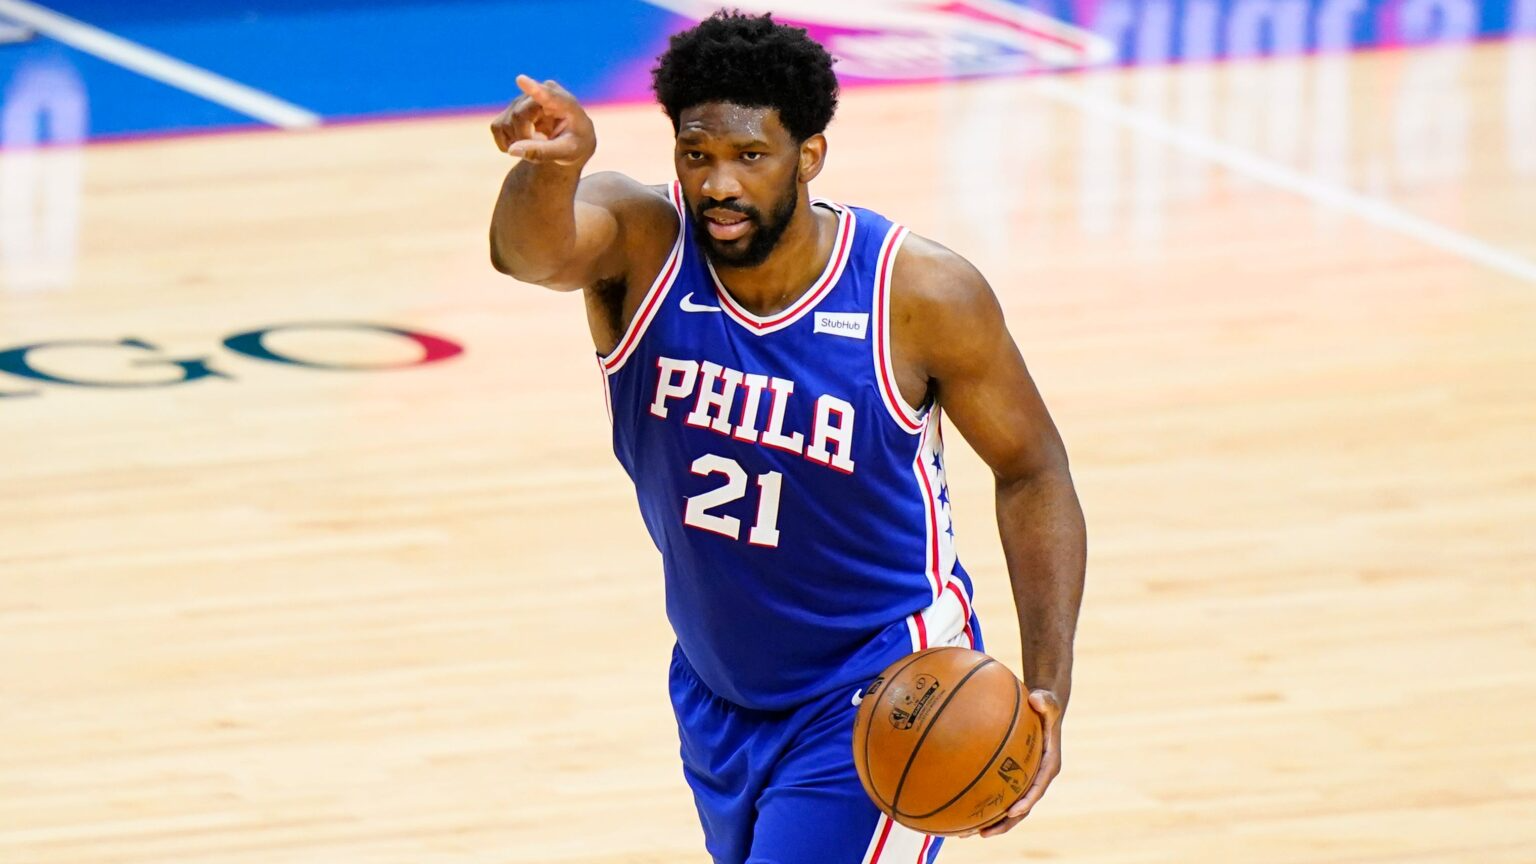 76ers vs Hawks Game 3 Preview: Can Embiid's Continued Excellence Propel Philadelphia to a 2-1 Series Lead in Atlanta?